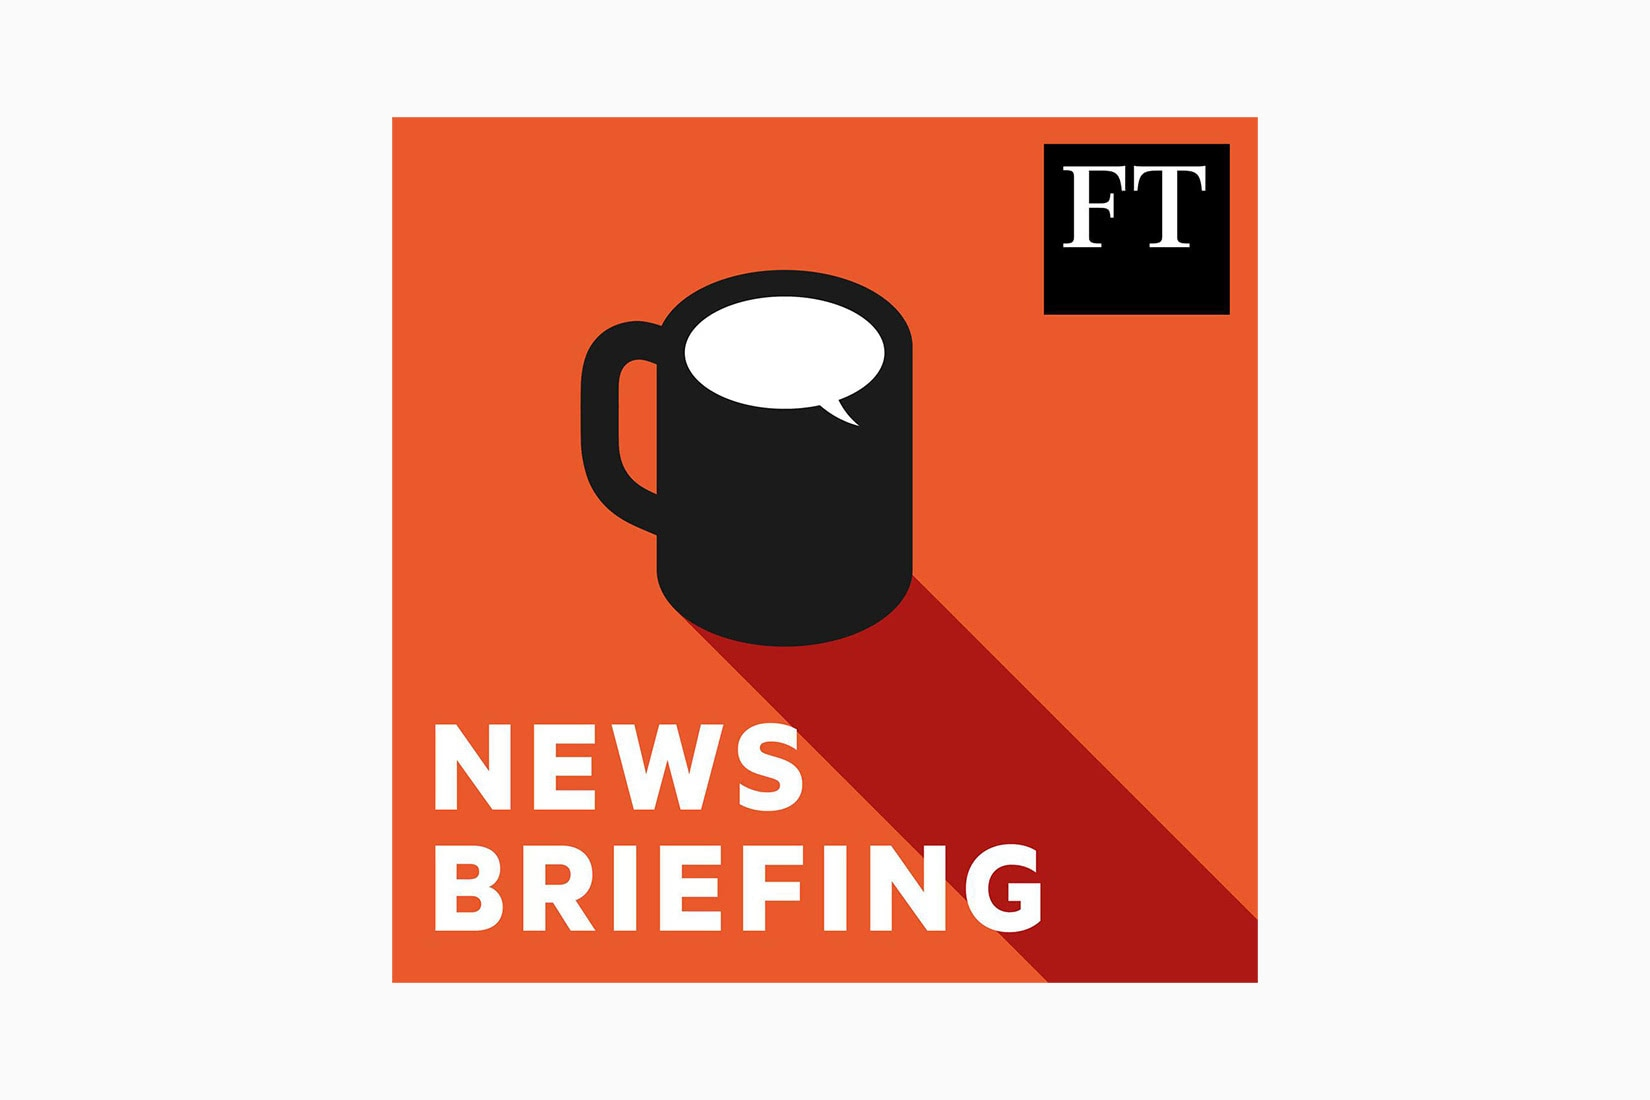 best podcasts ft news briefing financial times luxe digital